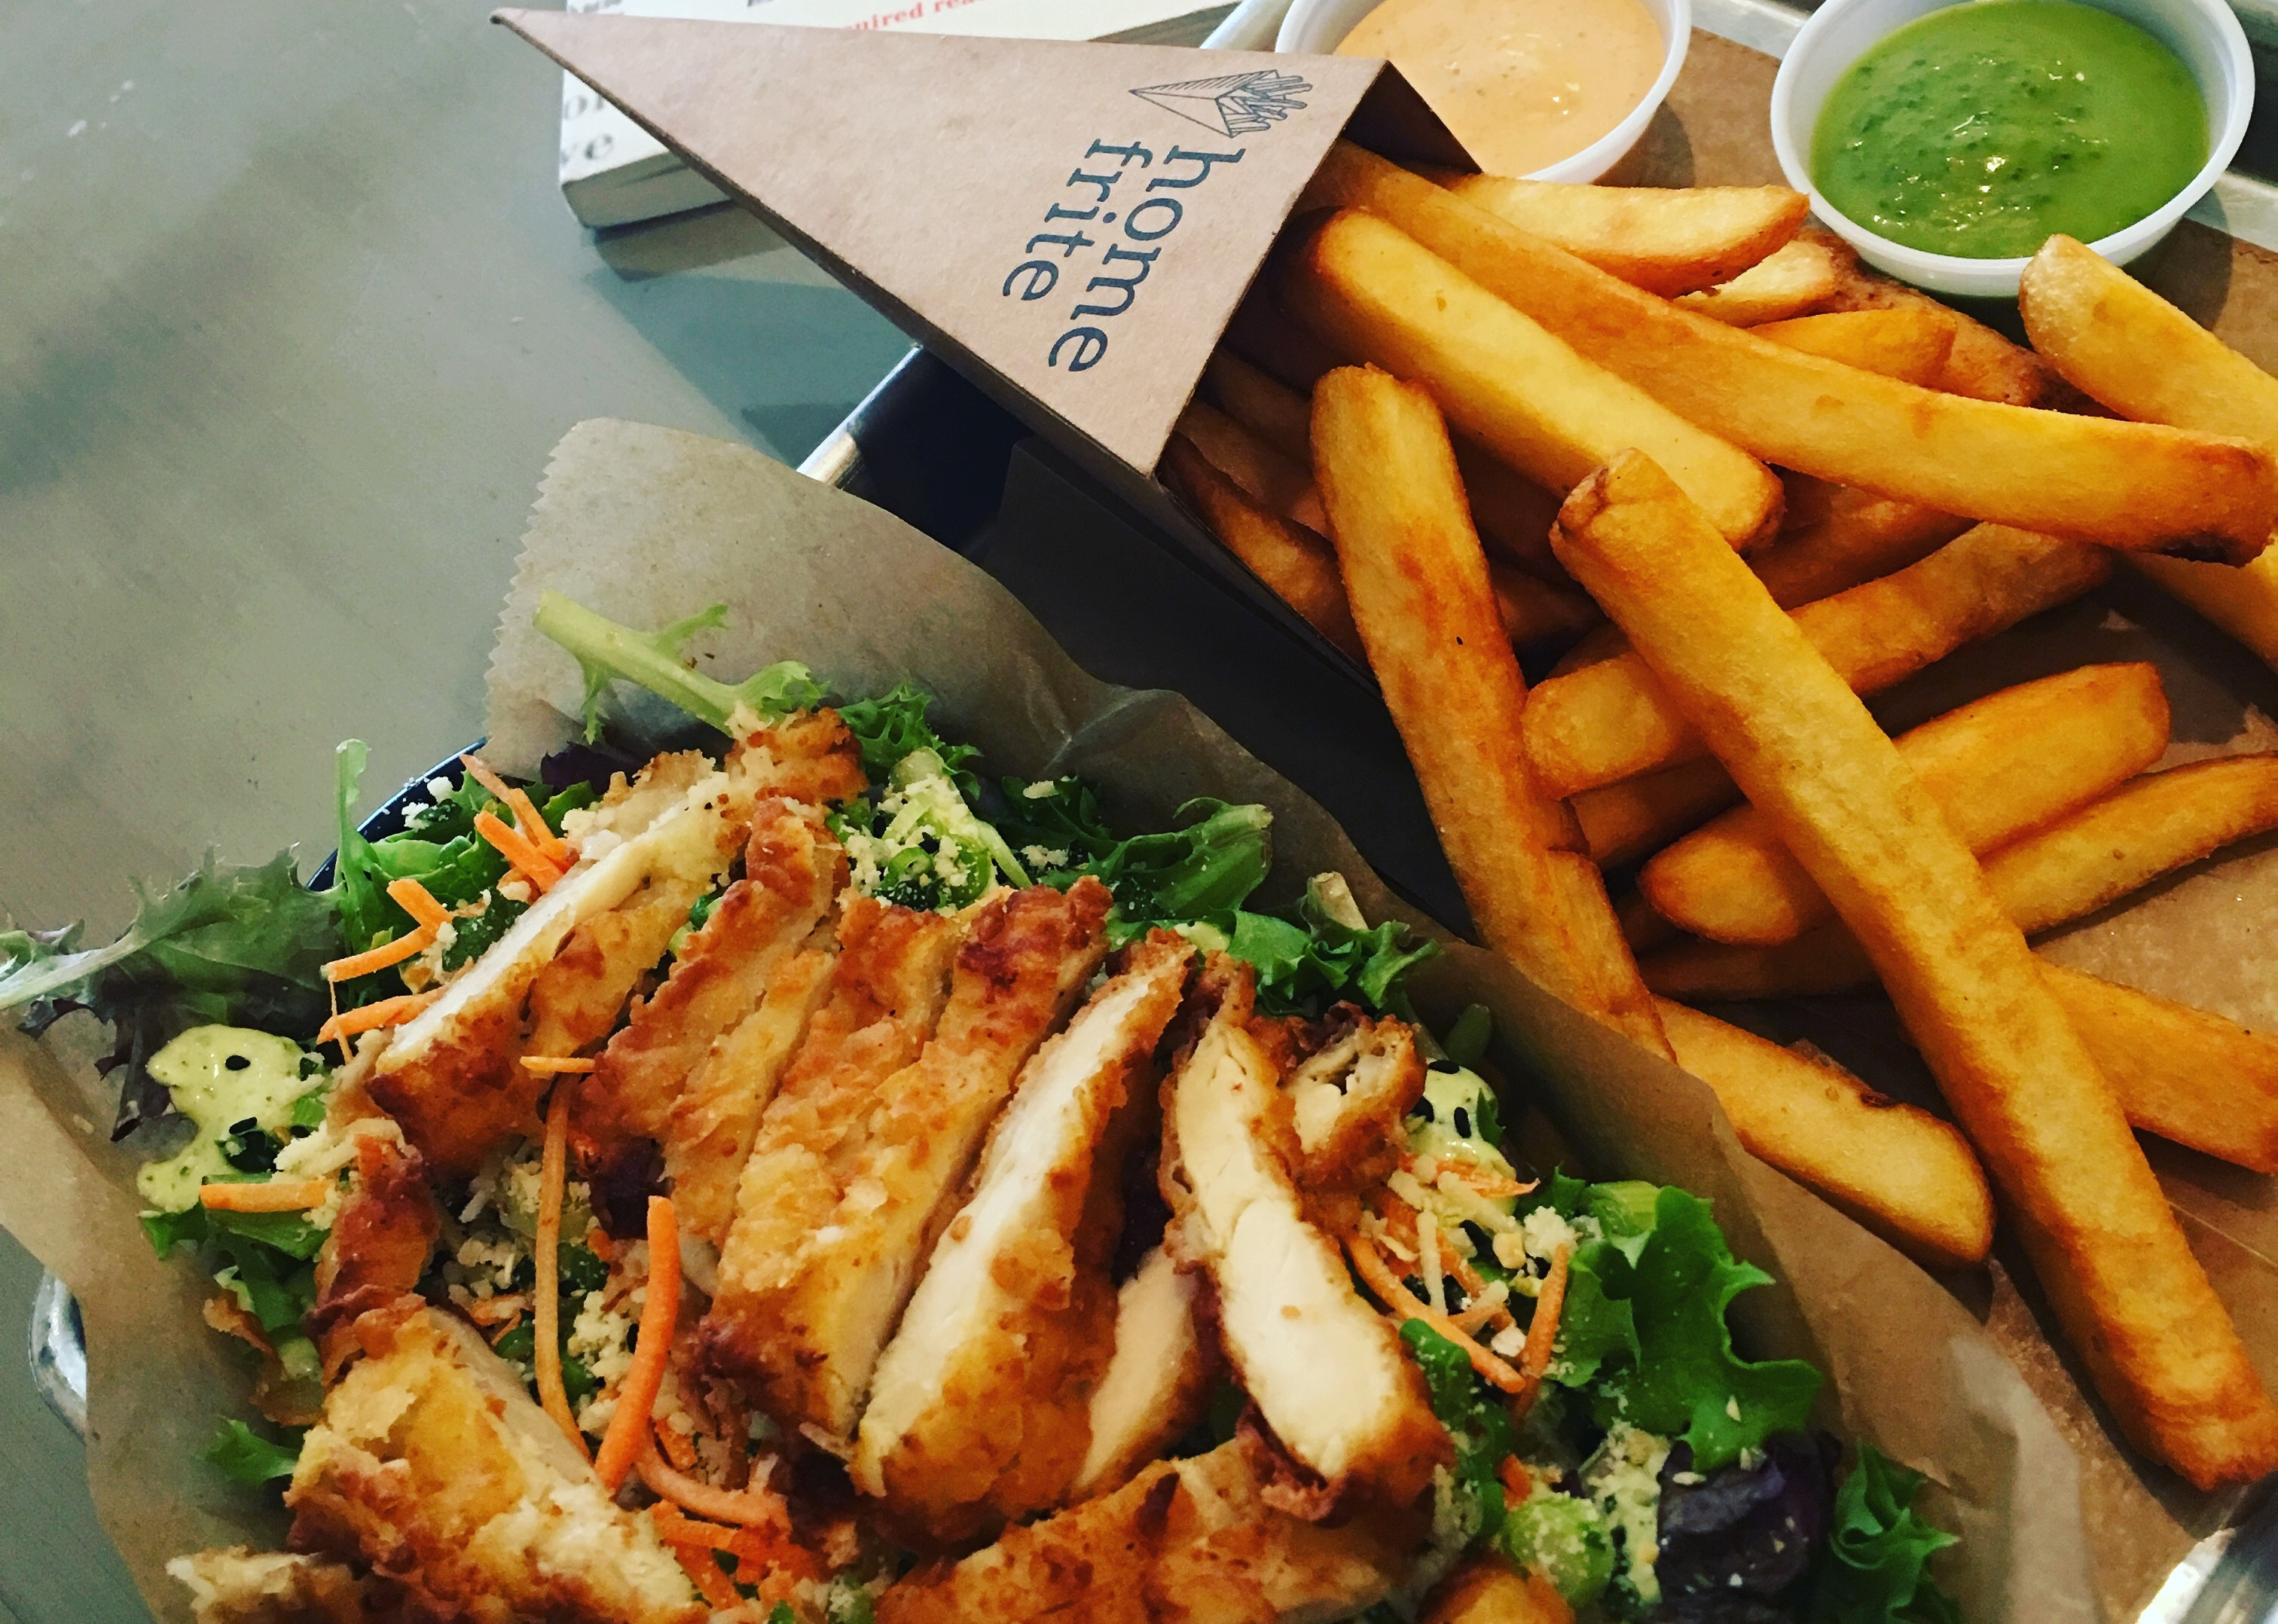 Home Frite- Crispy Chicken Salad and Fries